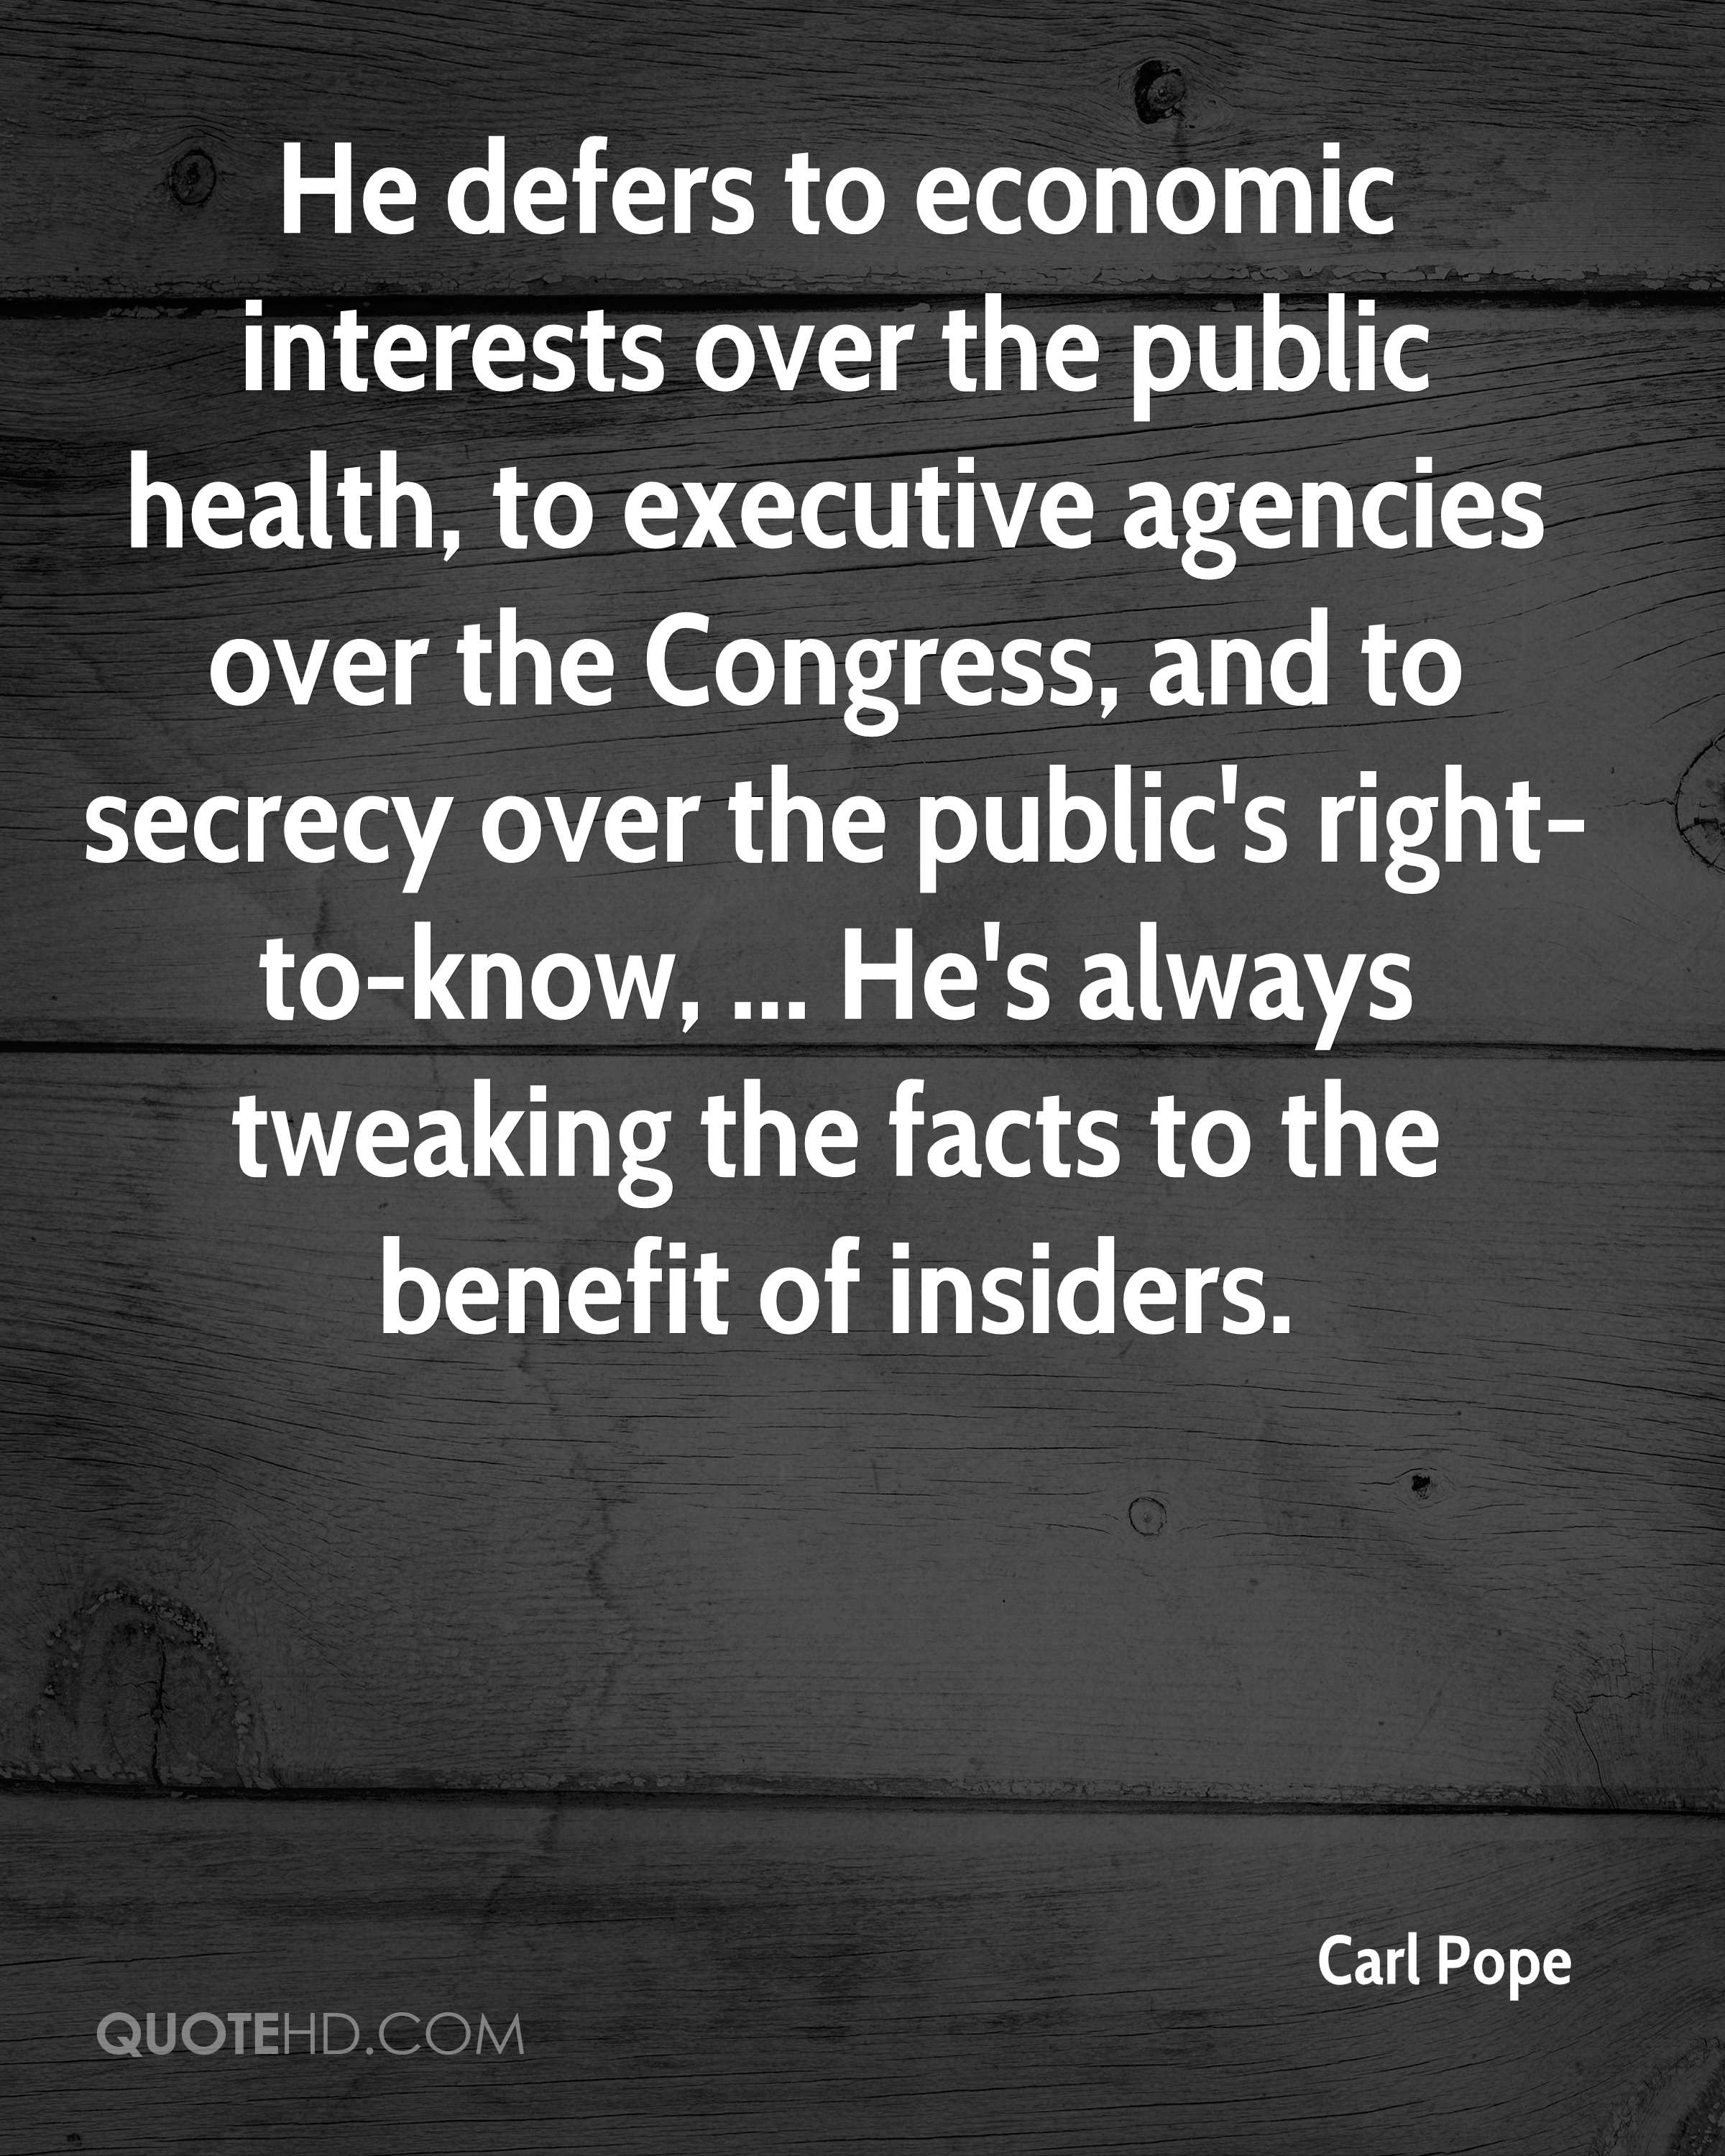 He defers to economic interests over the public health, to executive agencies over the Congress, and to secrecy over the public's right-to-know, ... He's always tweaking the facts to the benefit of insiders.